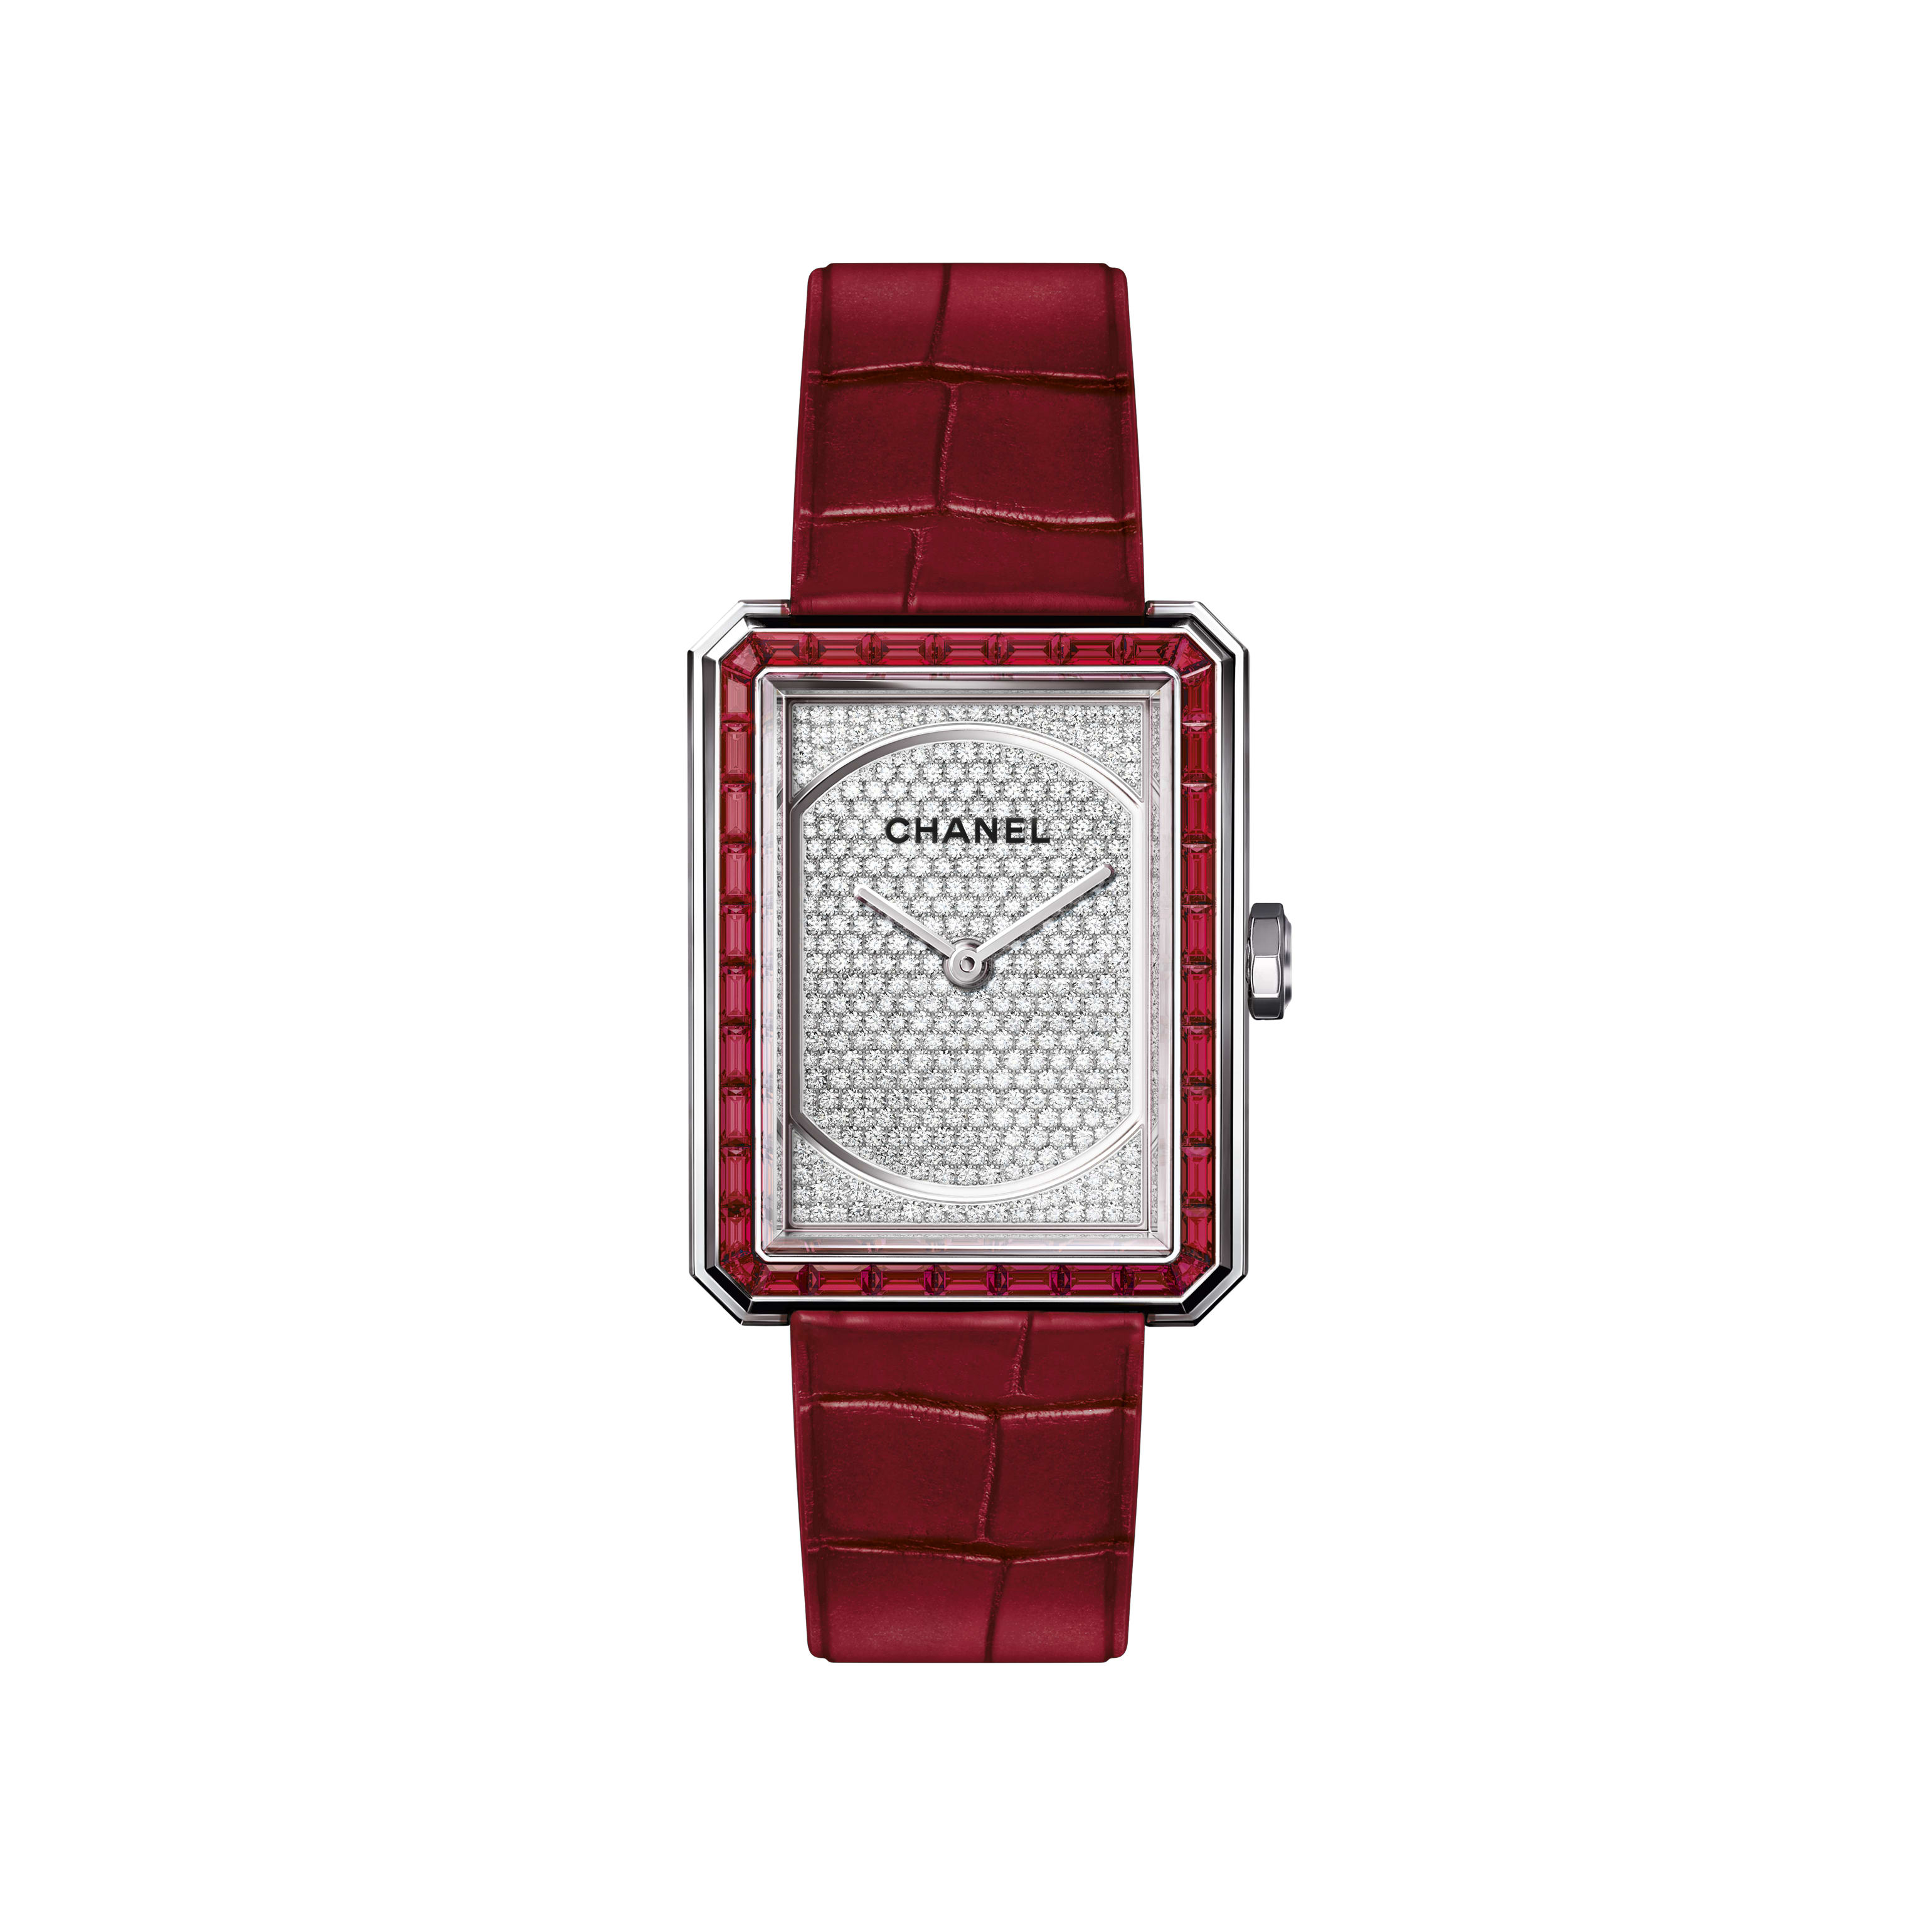 BOY·FRIEND RUBIES Watch - Medium version, white gold set with rubies and alligator strap - CHANEL - Default view - see standard sized version